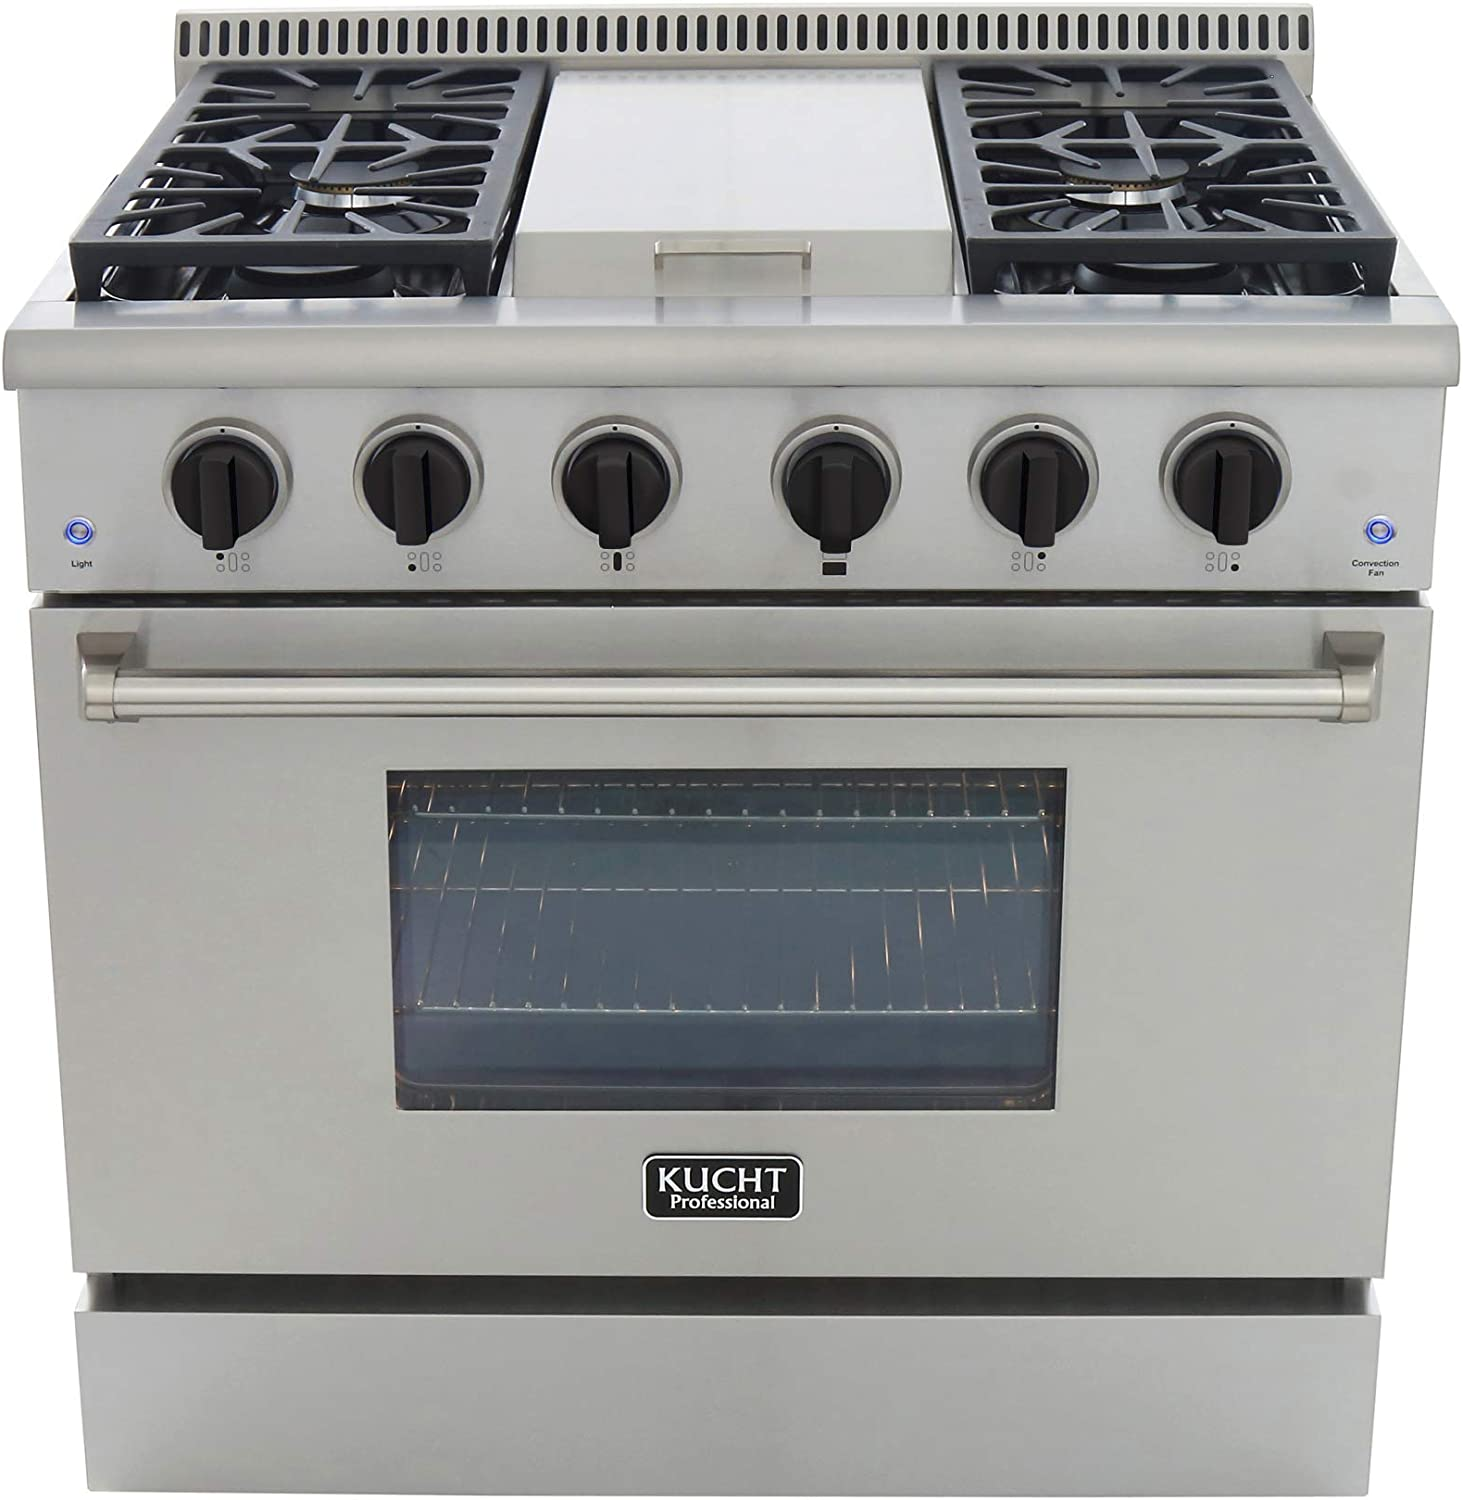 "Kucht KRG3609U/LP-K Professional 36"" 5.2 cu. ft. Propane Gas Range, Stainless-Steel, Tuxedo Black"